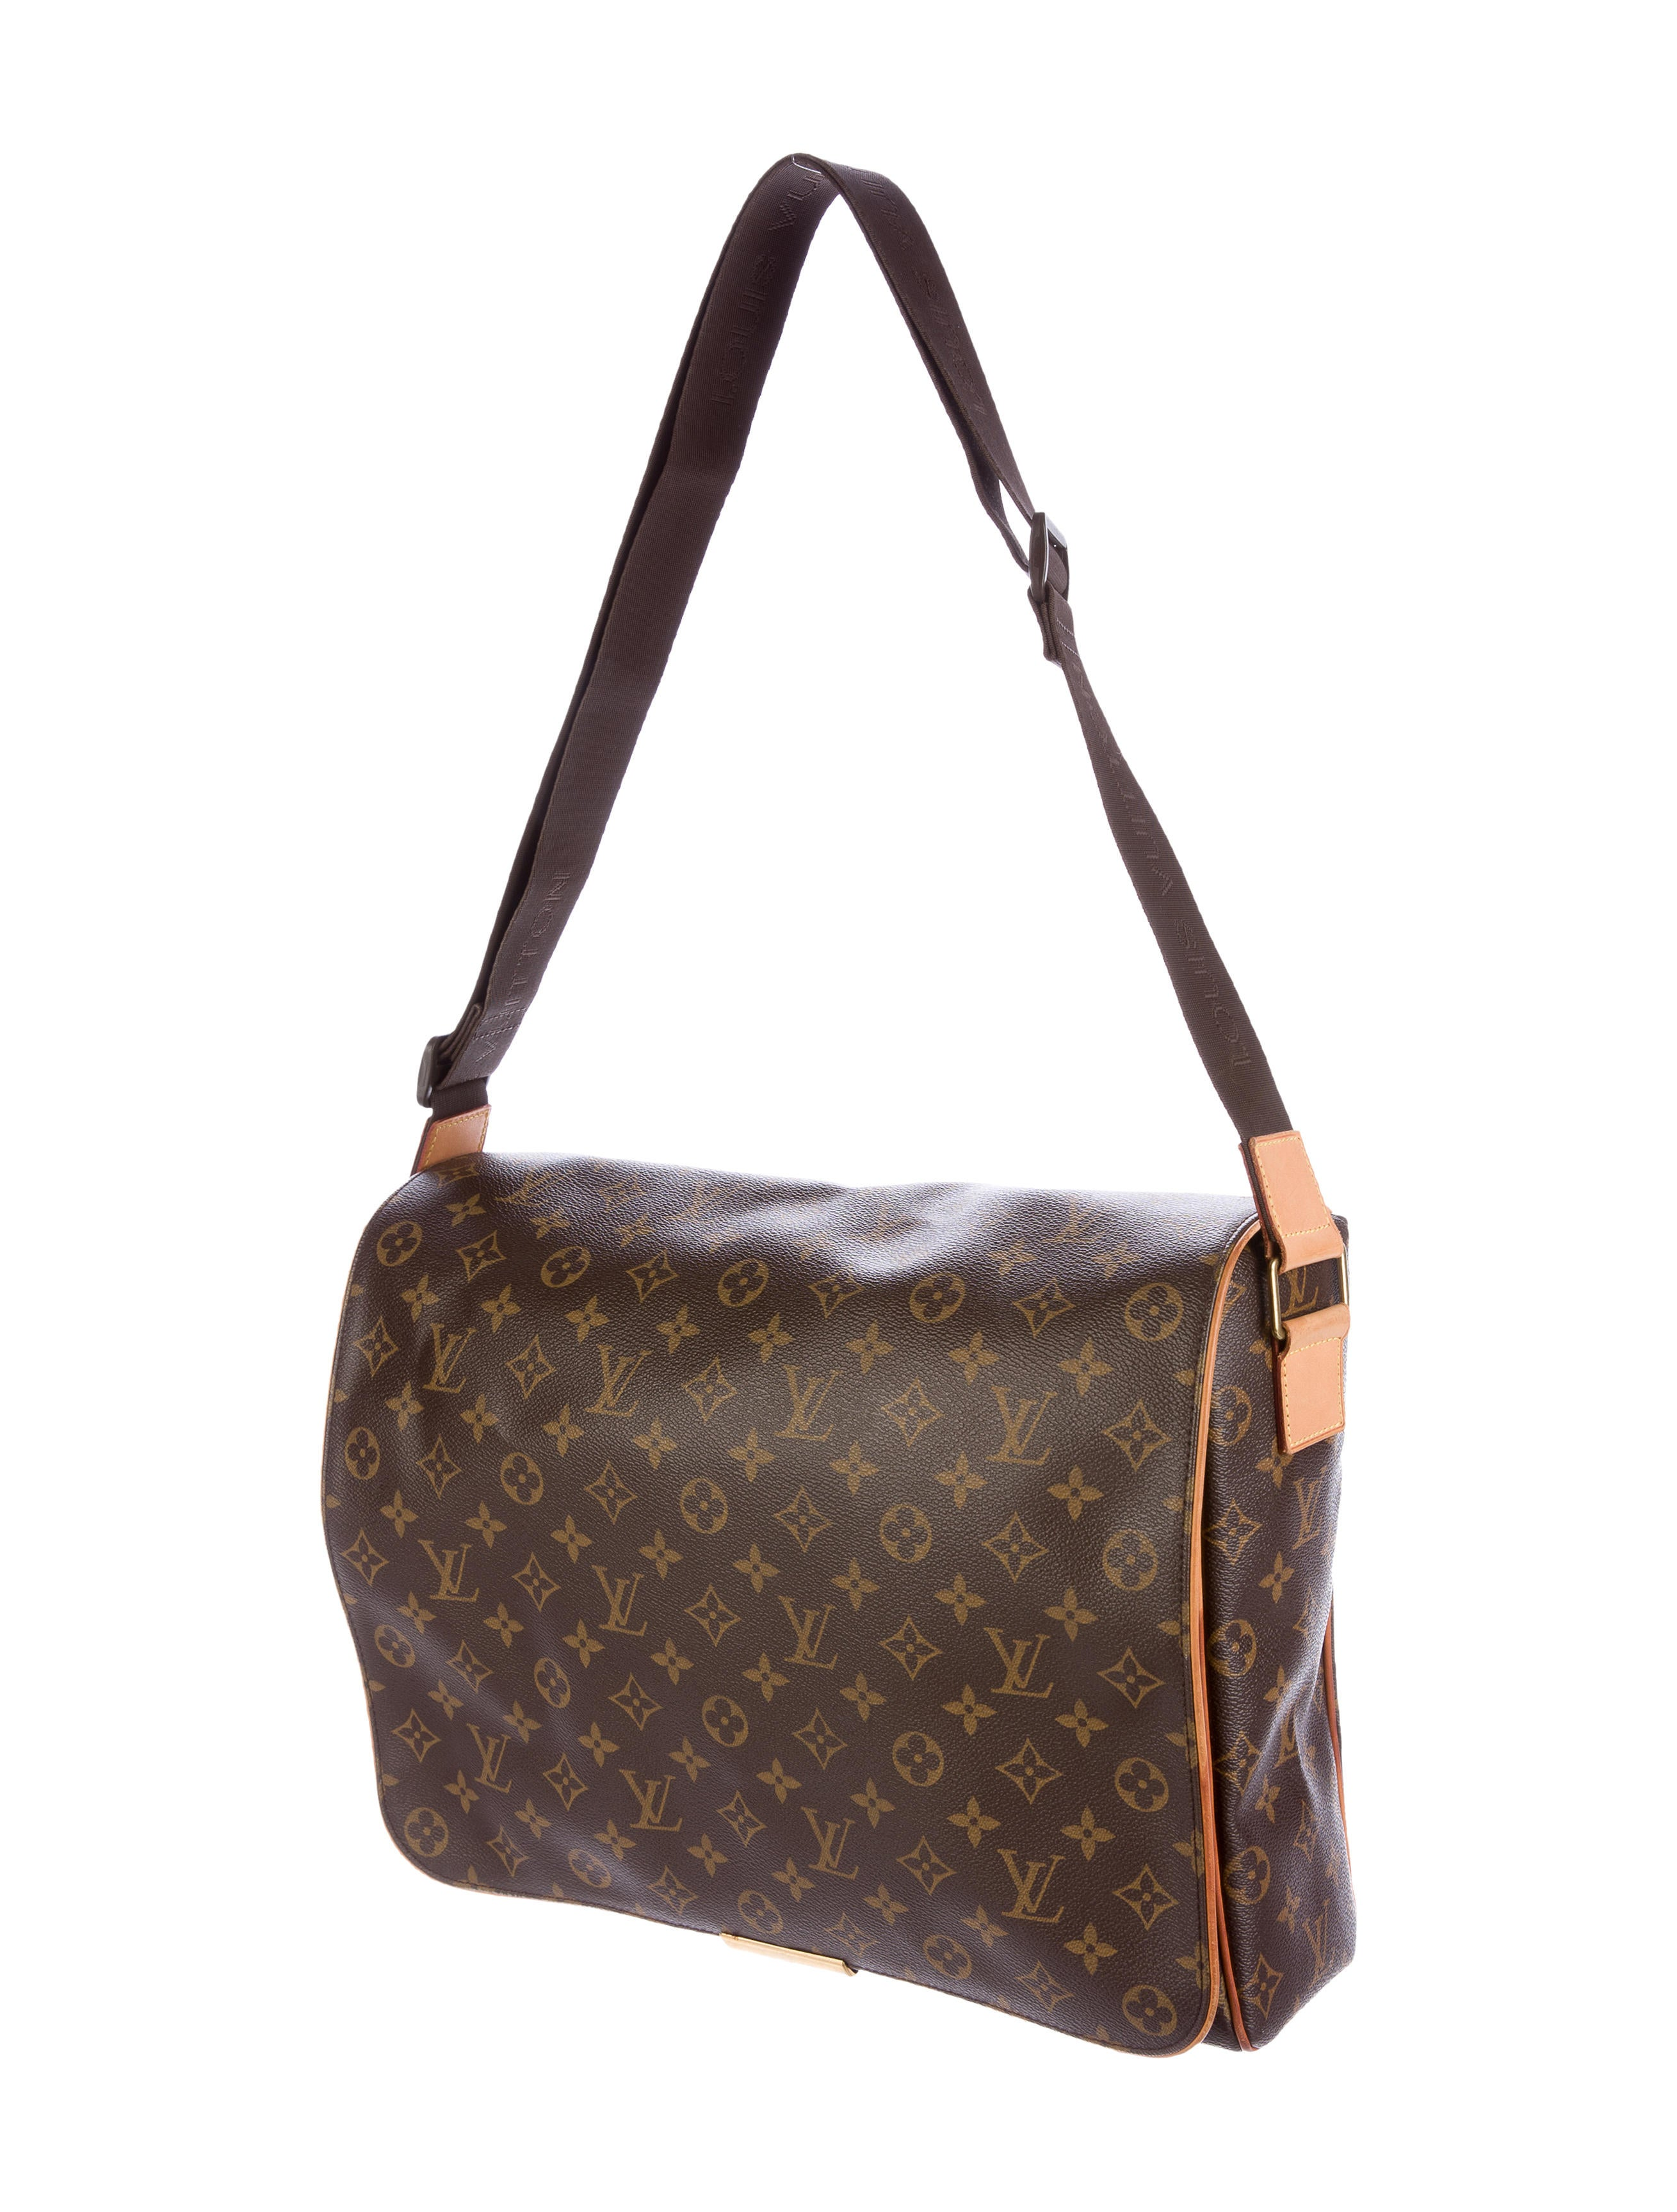 Beautiful Louis Vuitton Antigua Besace Messenger Bag - Handbags - LOU107351 | The RealReal